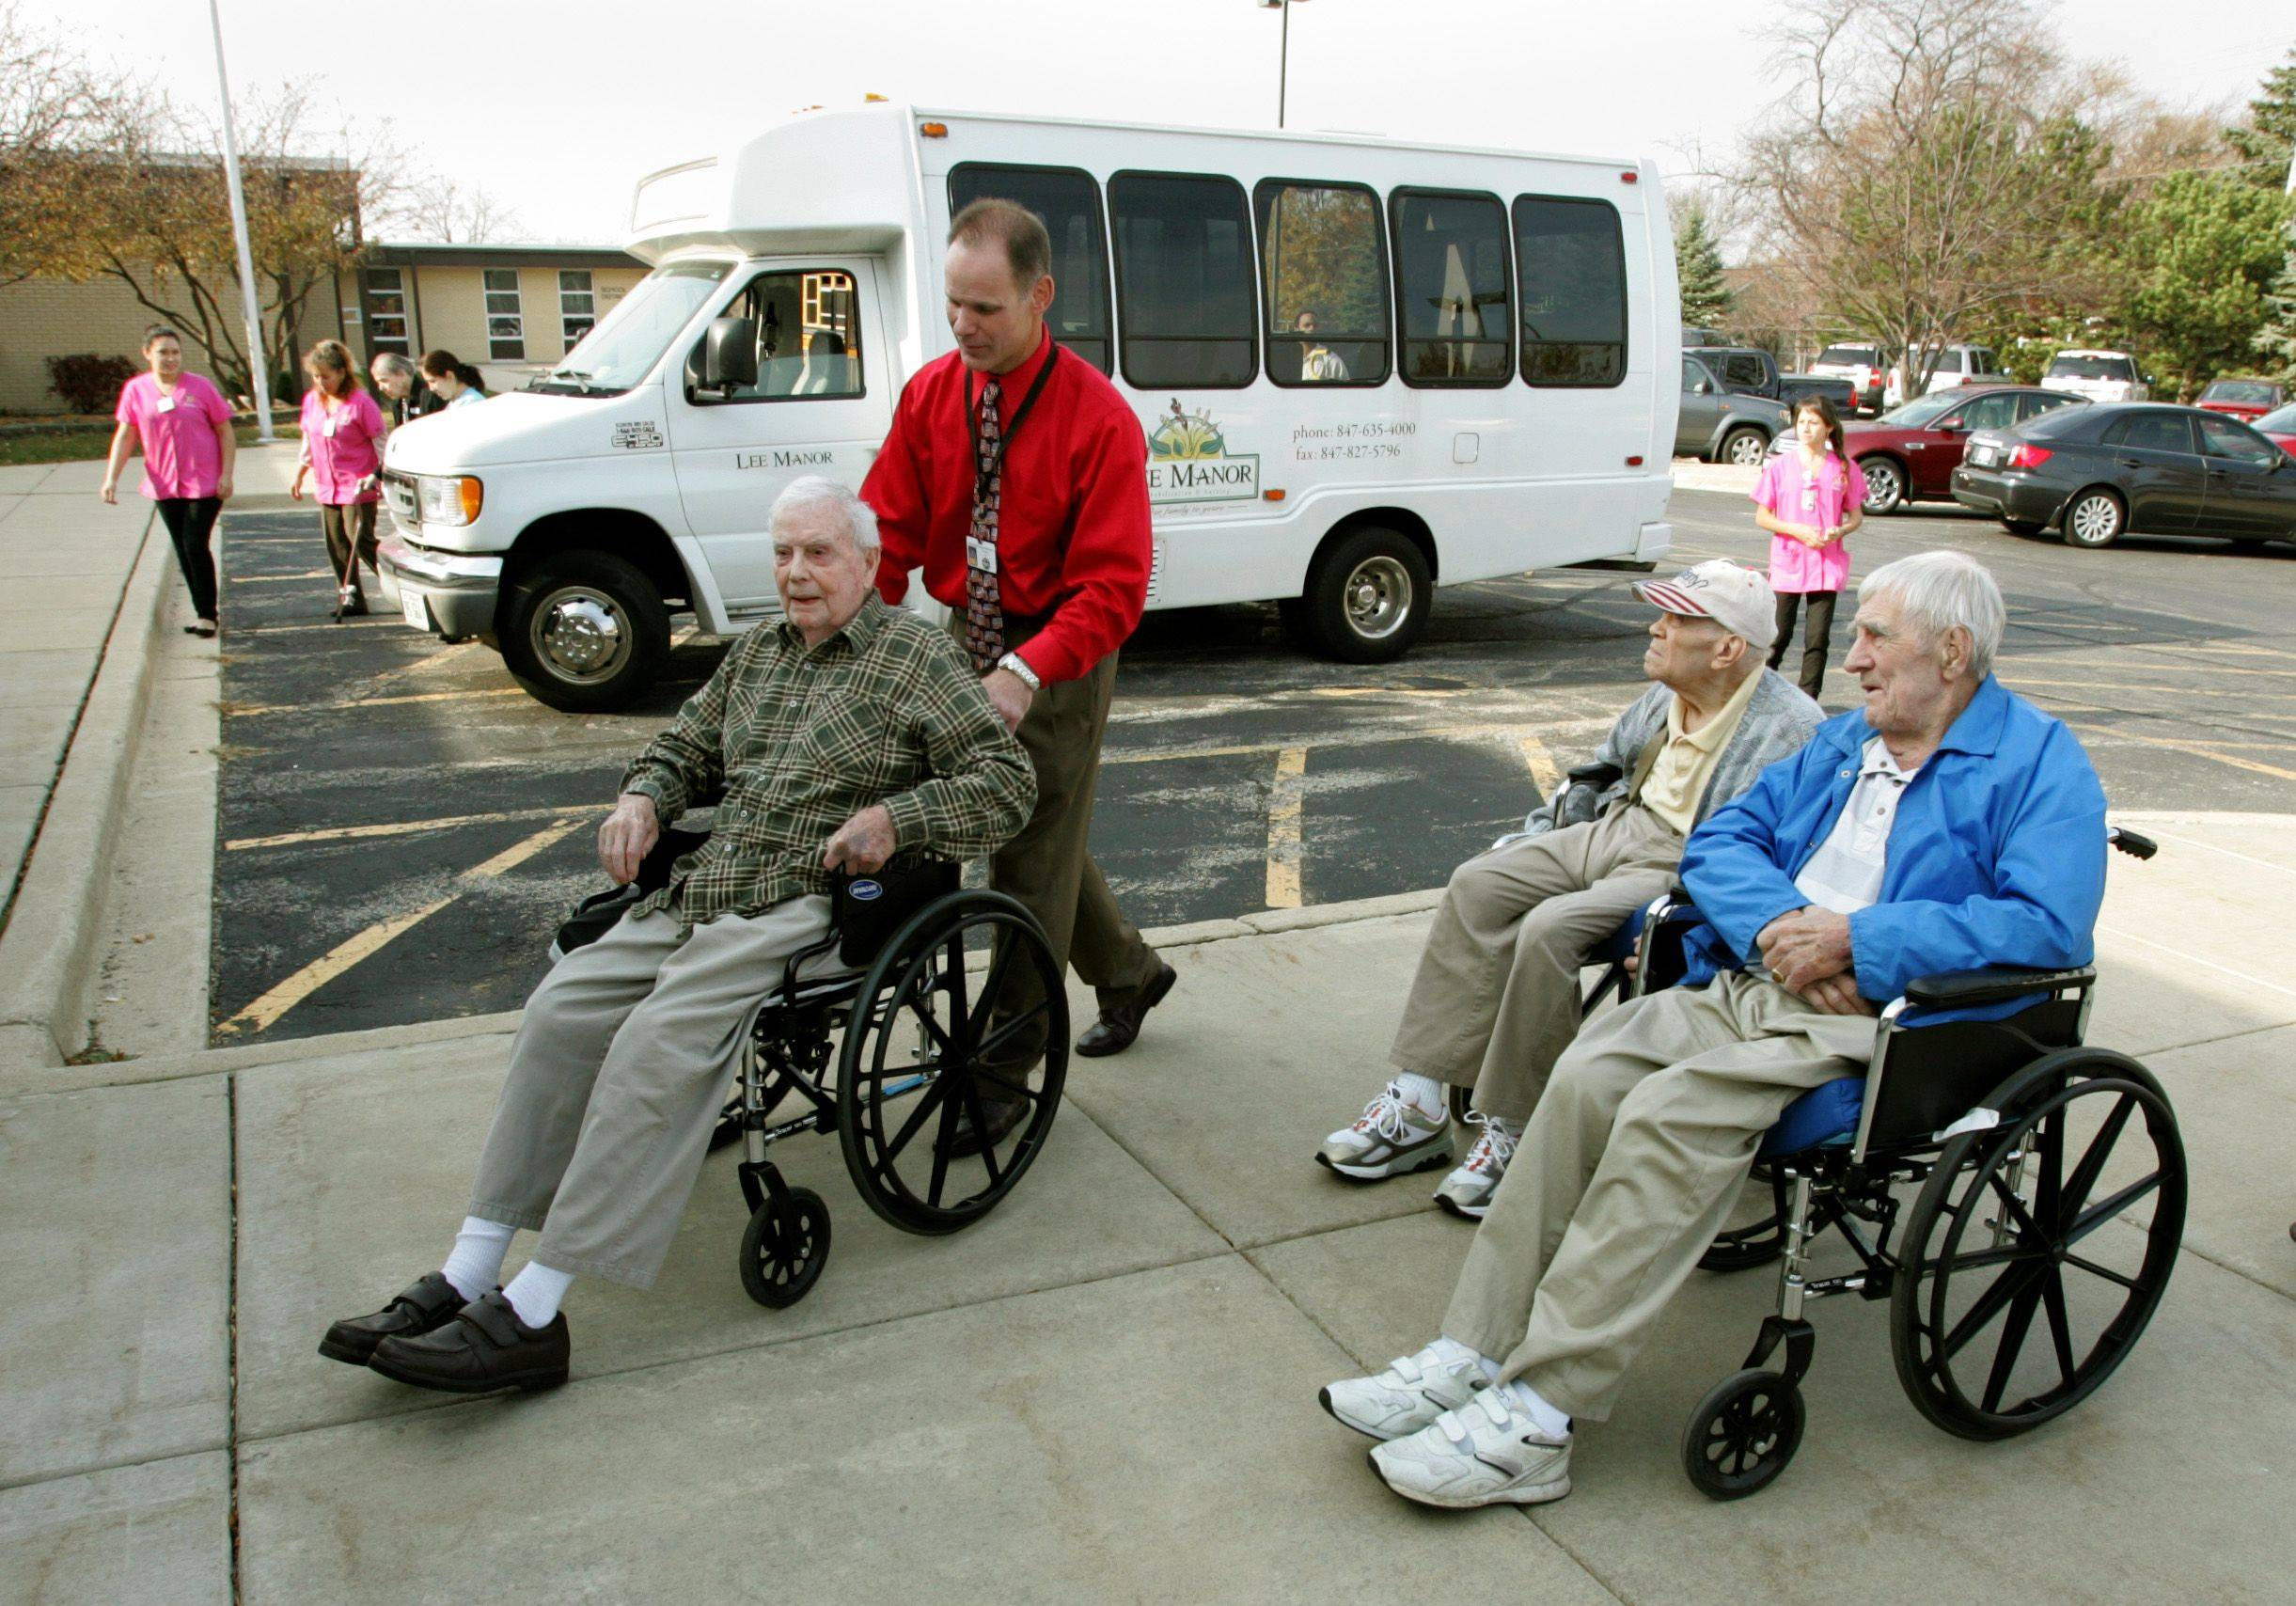 Principal Mark Dwyer of DuJardin Elementary School in Bloomingdale, wheels in World War II veterans from the Lee Manor Retirement home in Des Plaines, to participate in a Veterans lunch at the school.